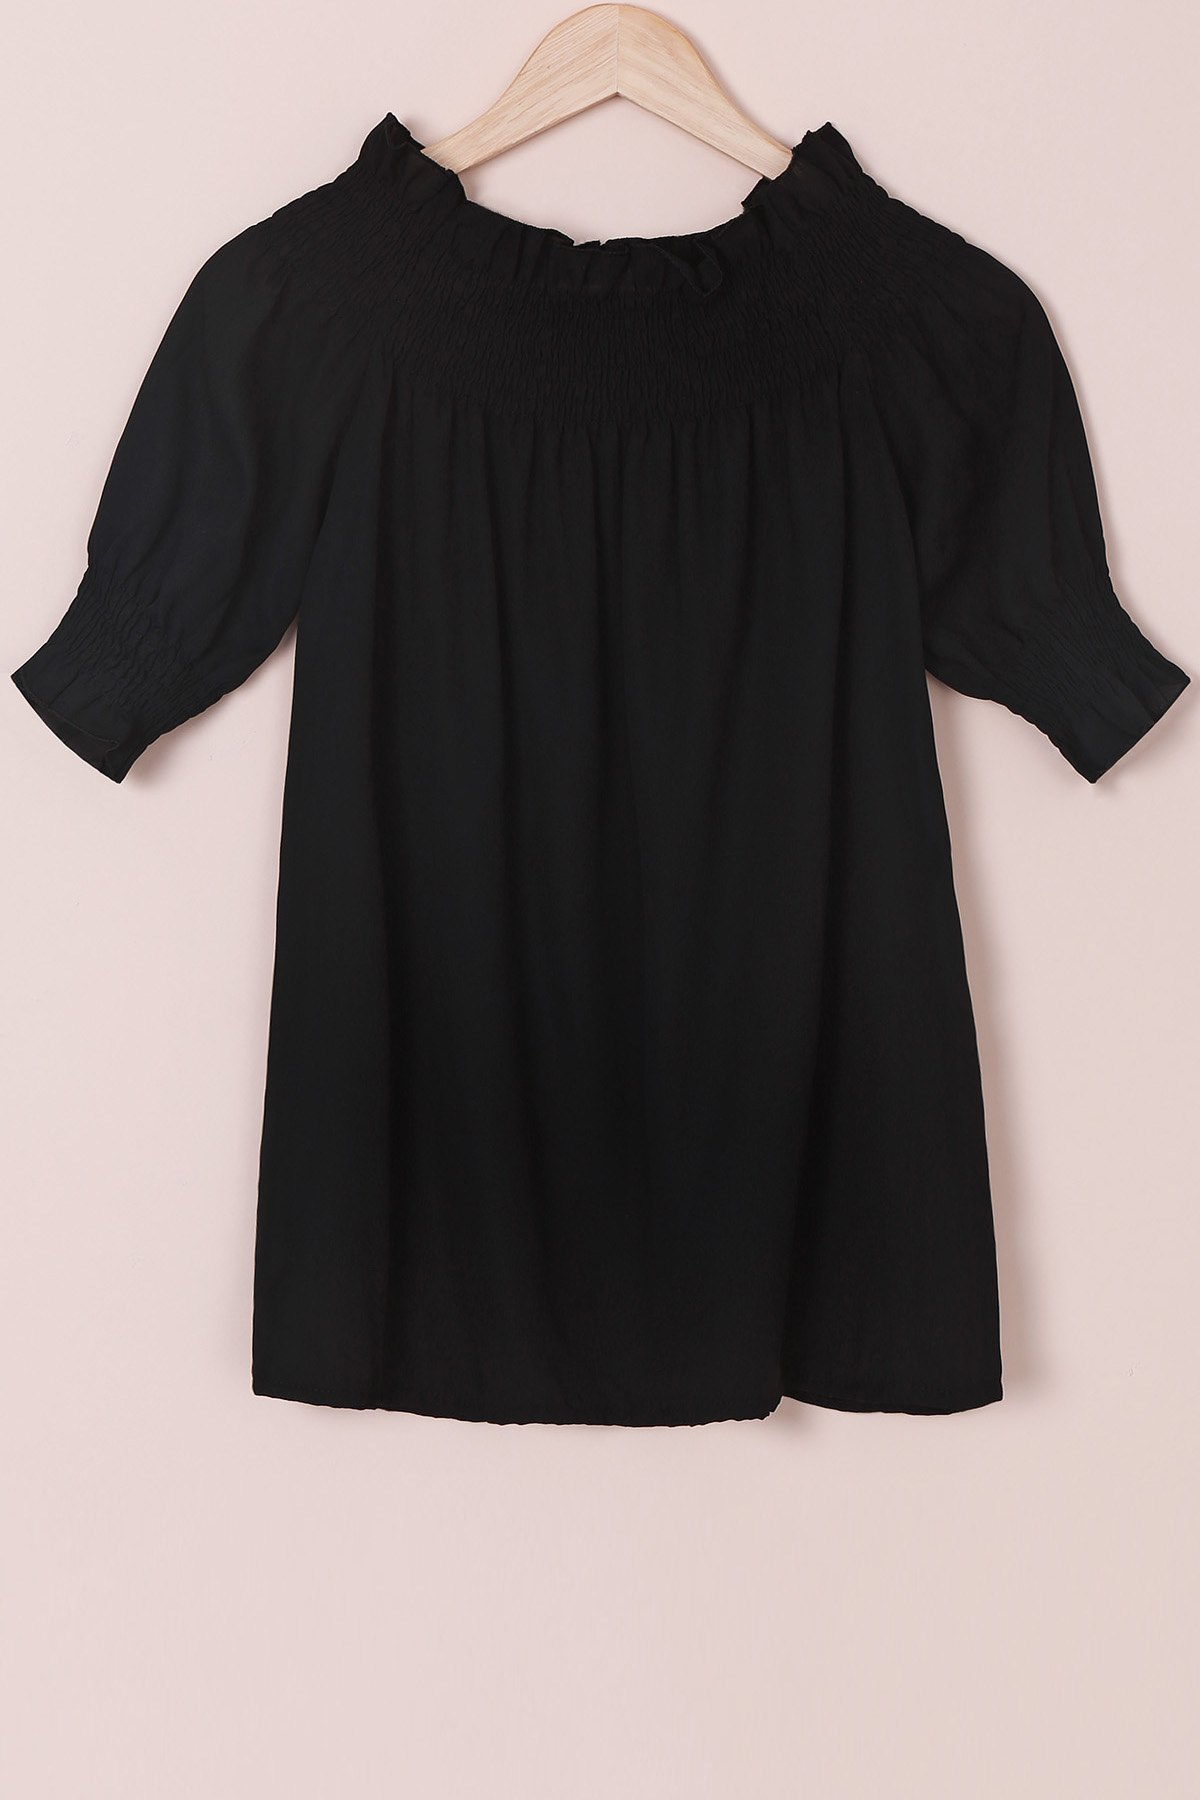 Trendy Off-The-Shoulder 3/4 Sleeve Solid Color Blouse For Women - S BLACK